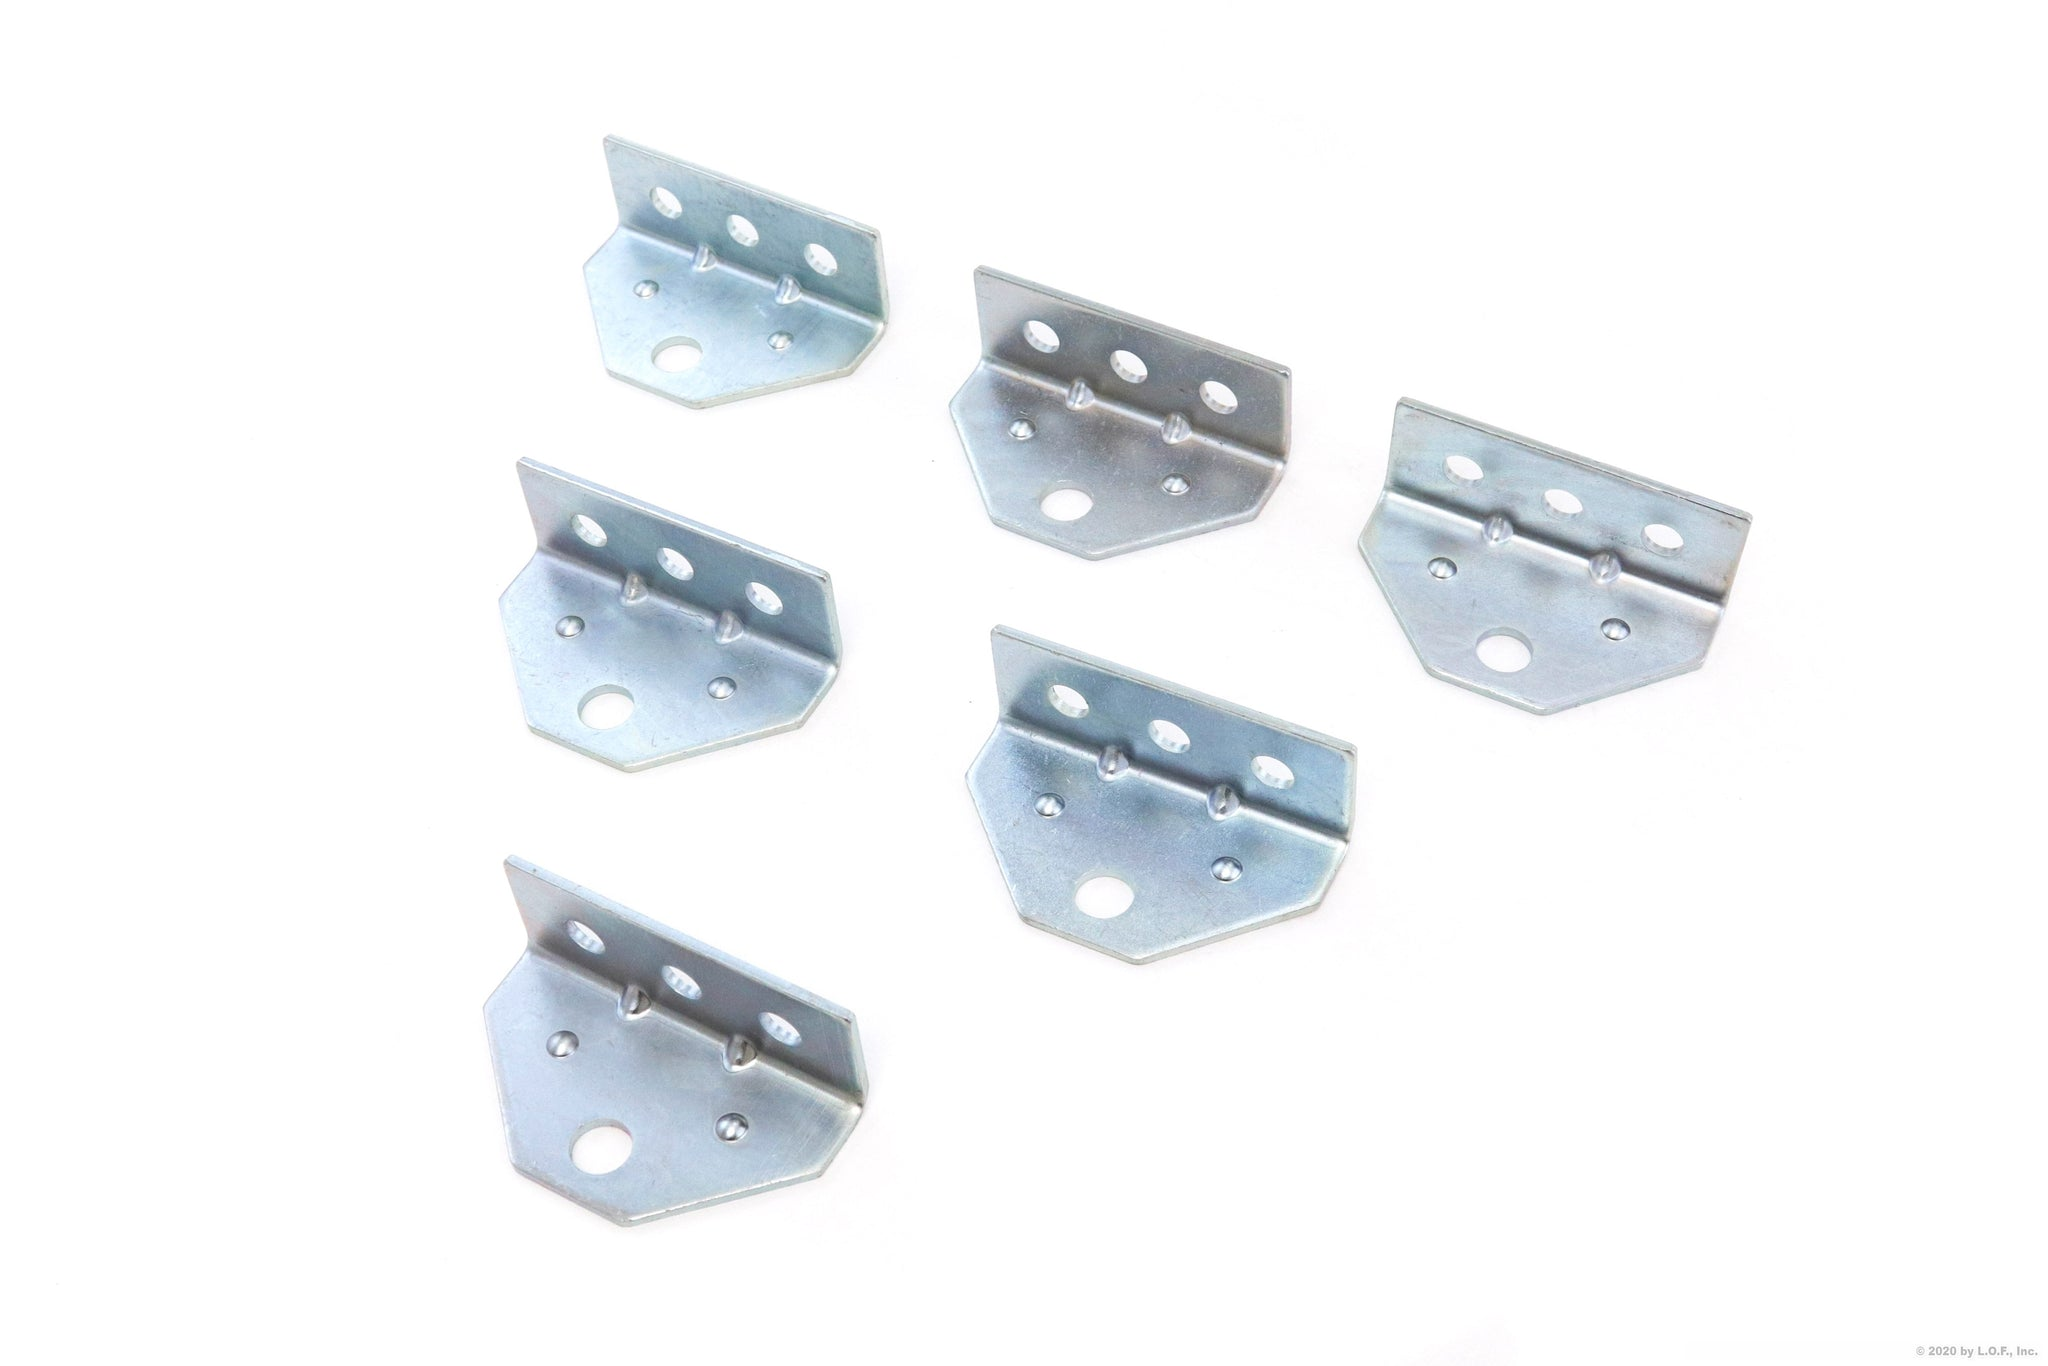 6 Boat Trailer Top Angle Zinc Swivel Top Angle Bracket for Bunk Brackets